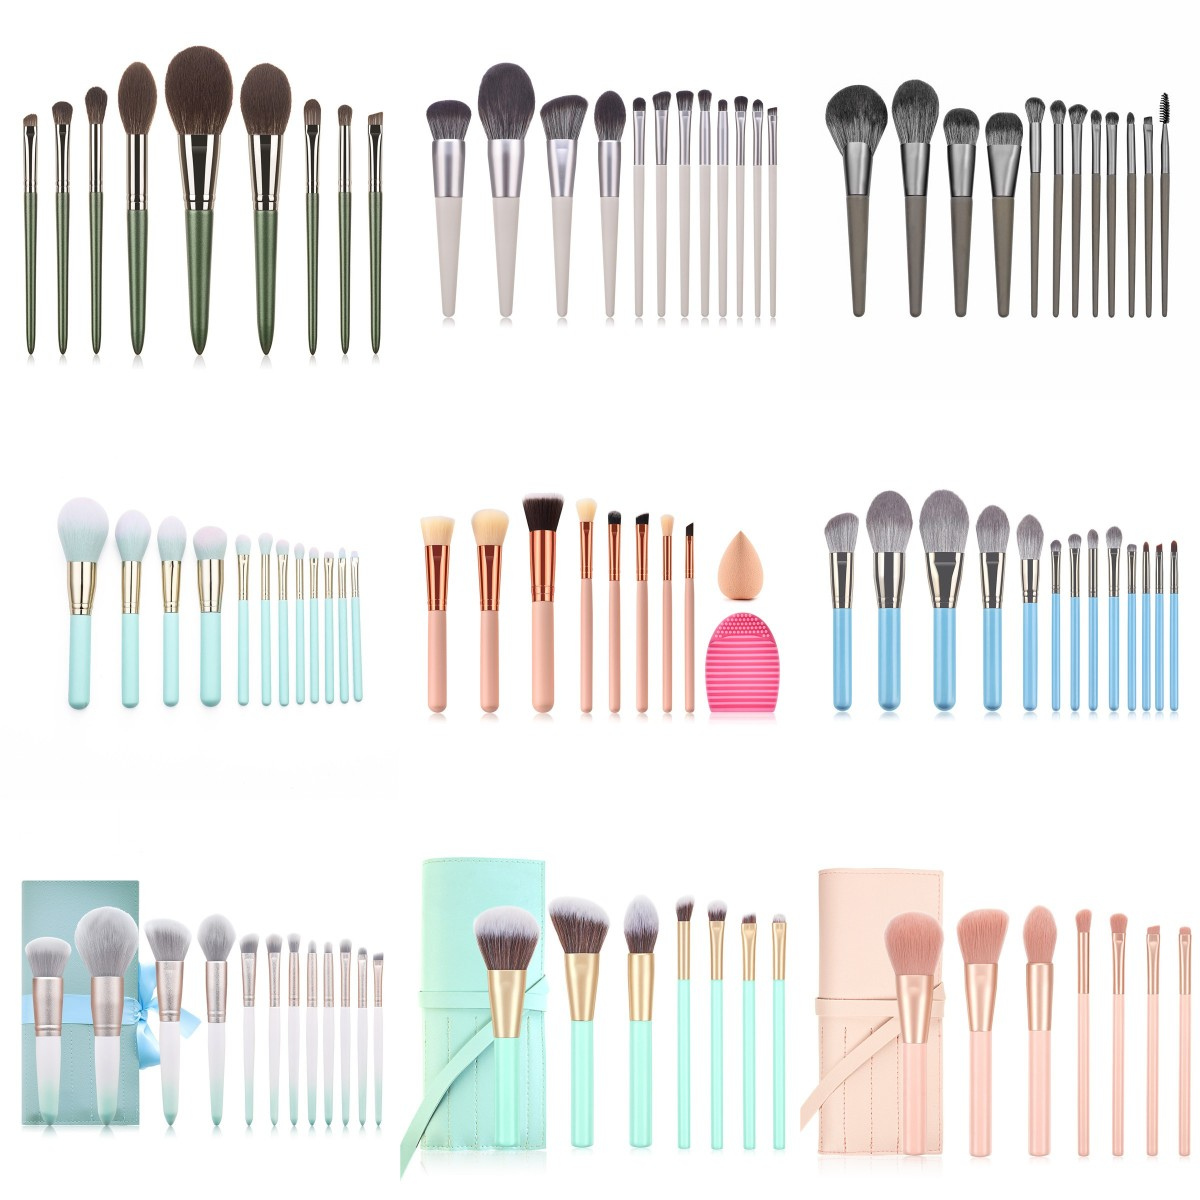 Makeup Brushes Set 14/12//9/7Pcs With Leather Bag Foundation Powder Blush Eyeshadow Sponge Brush Soft Hair Cosmetic Tools Makeup